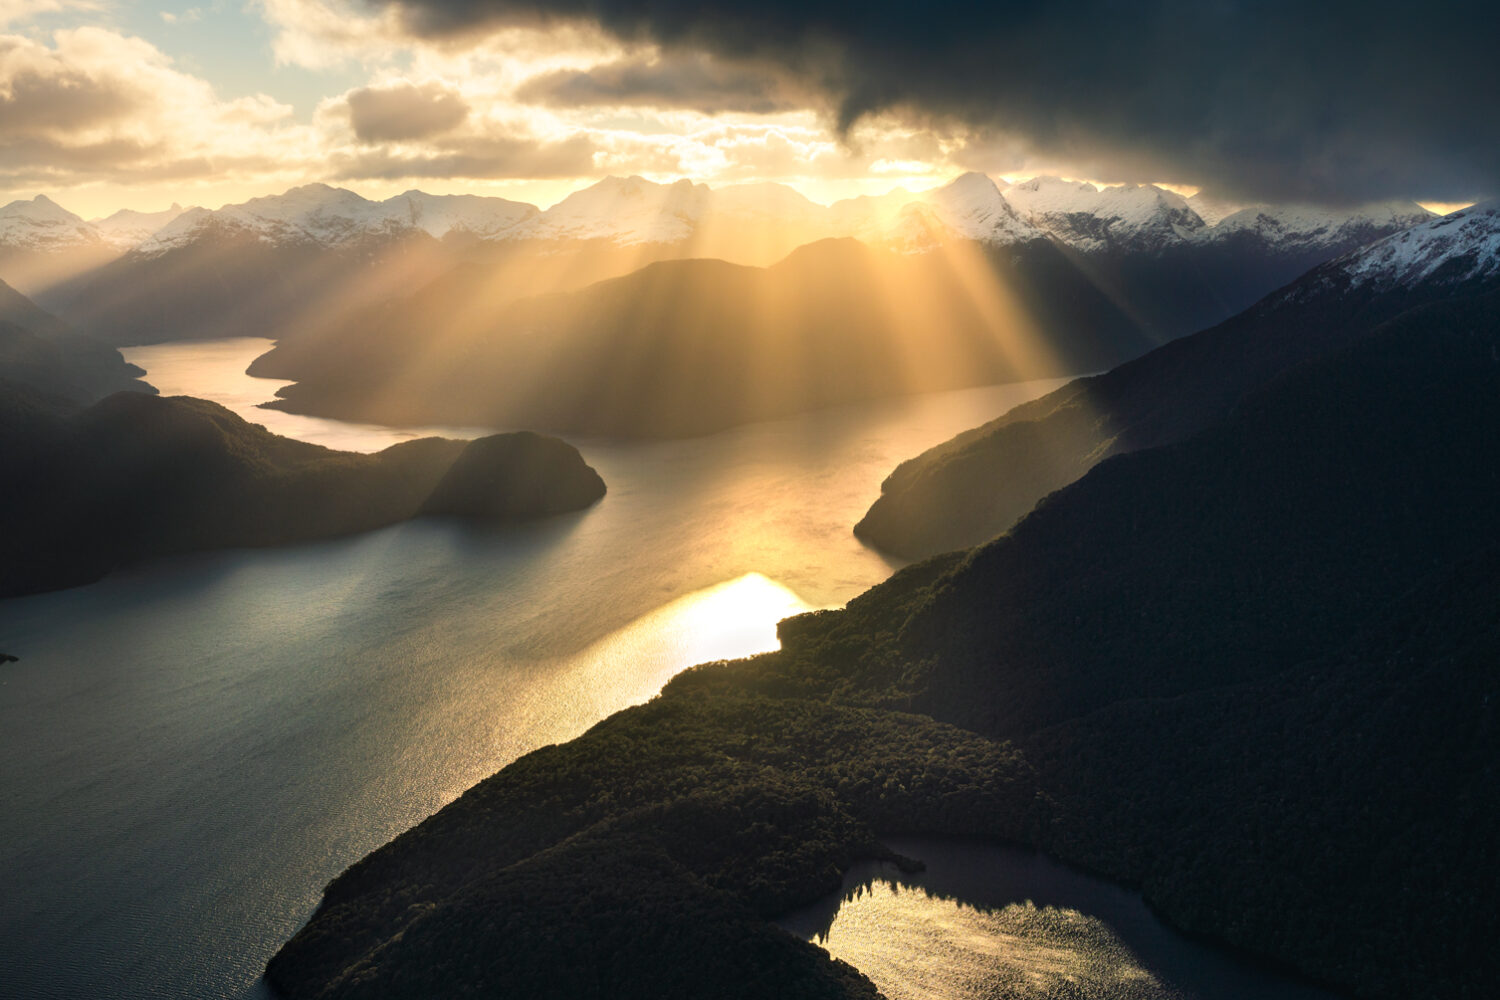 North arm, lake Te Anau with sun rays